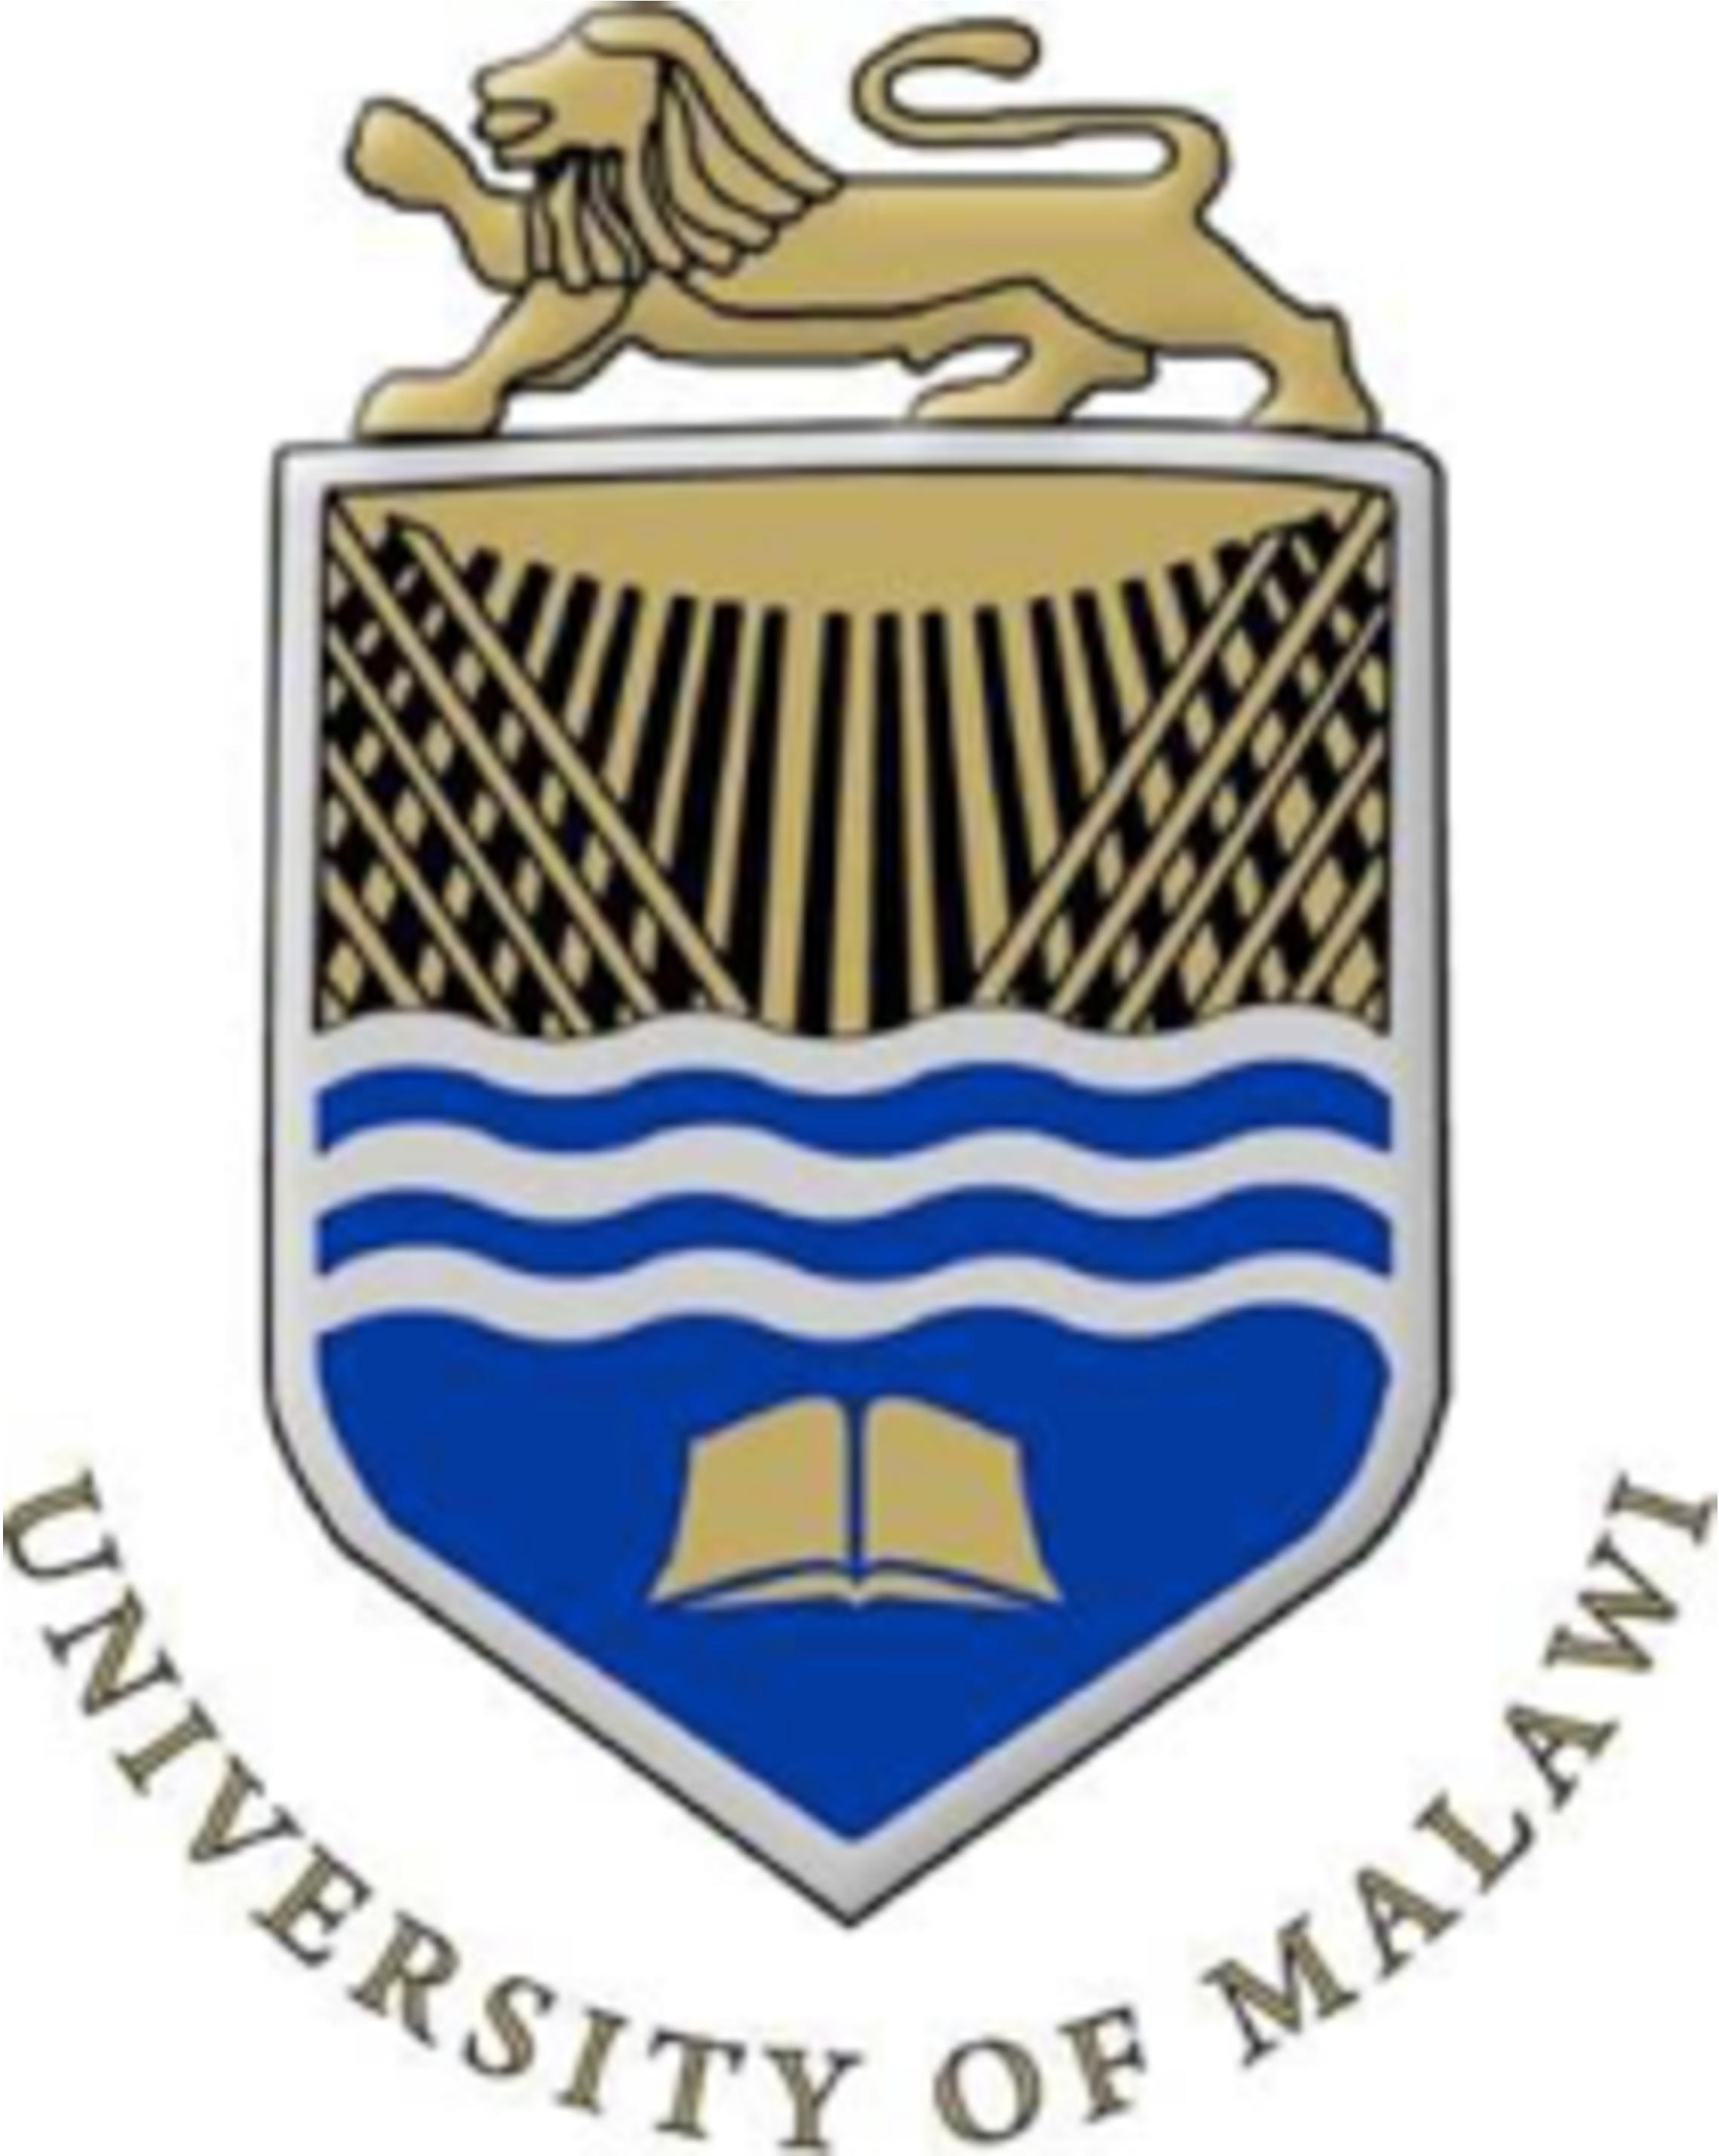 Centre for Social Research, University of Malawi